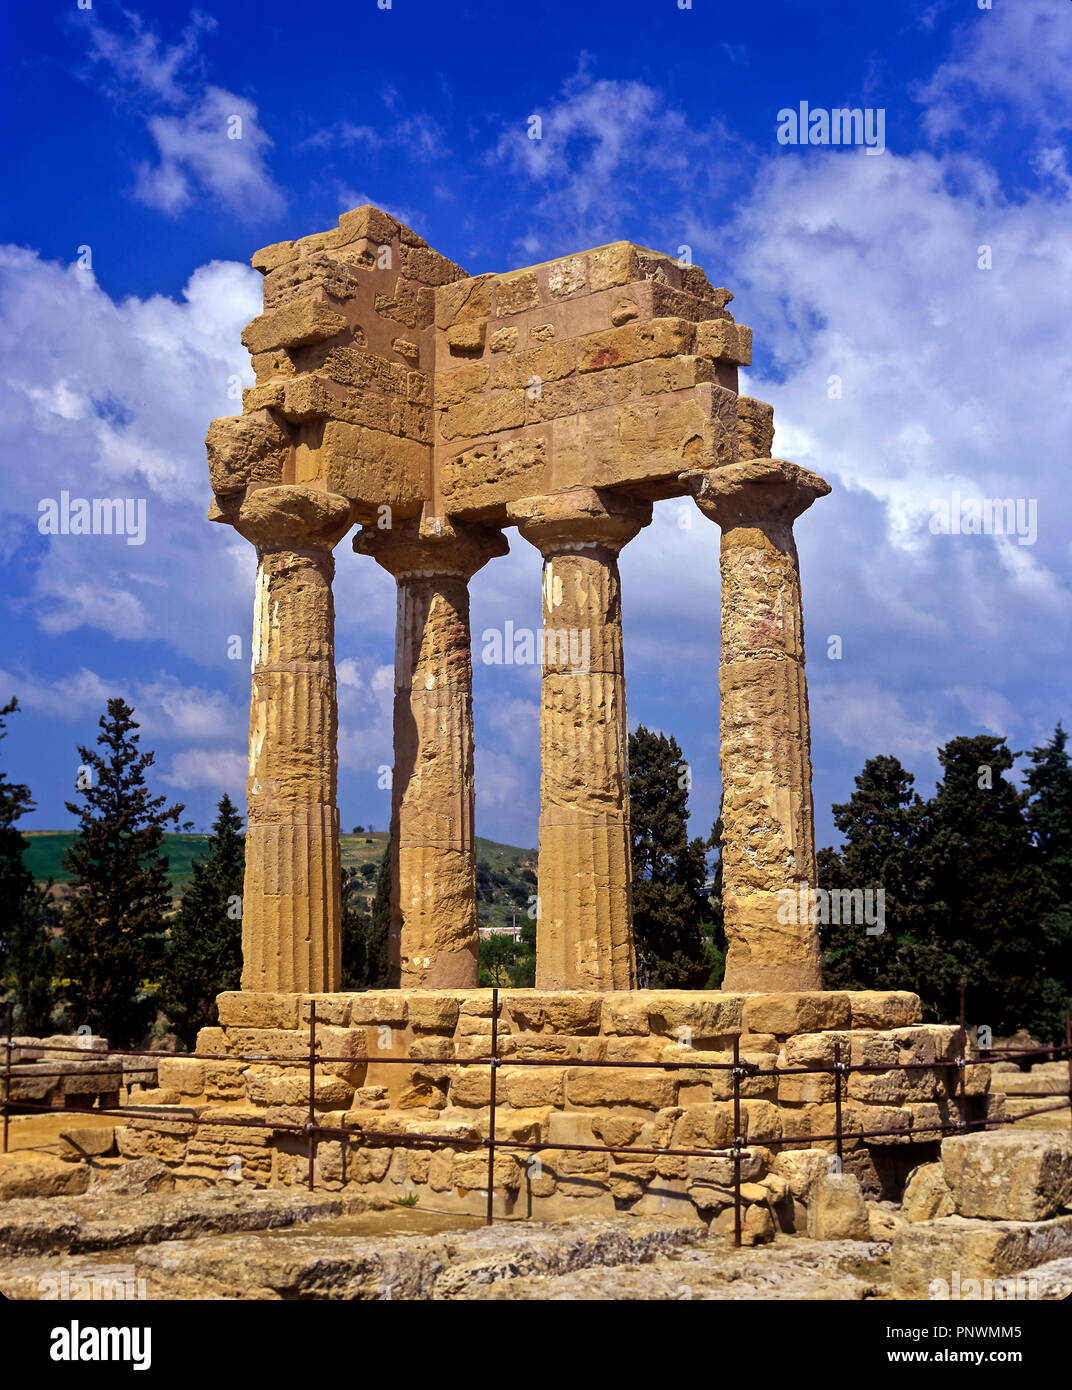 Greek temple of the Dioscuri (or Castor and Pollux) - 5th century BC. Valley of the temples. Agrigento. Sicily. Italy. Europe - Stock Image